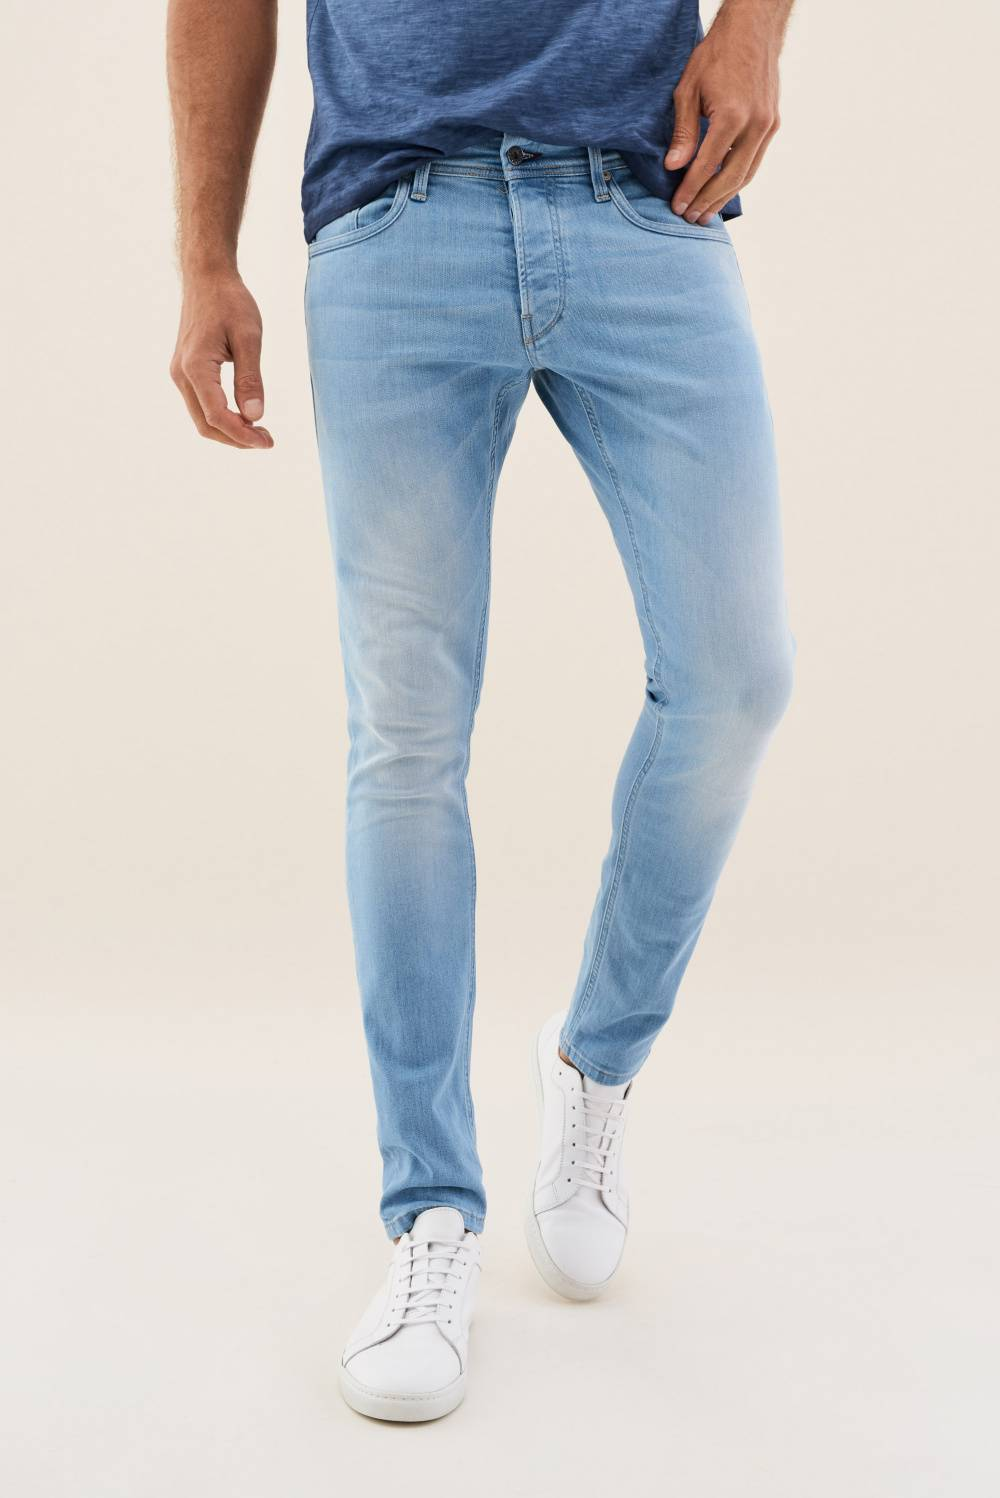 Clash skinny jeans in light colour - Salsa